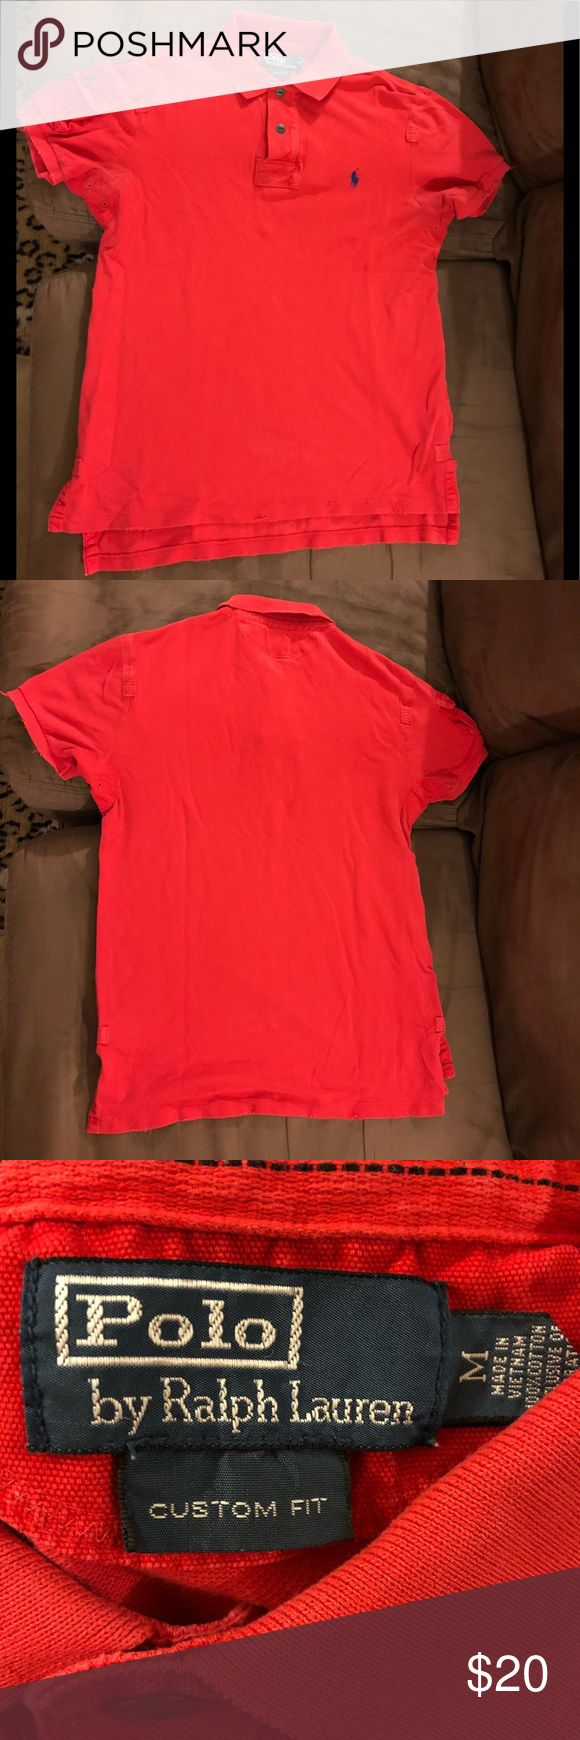 Polo Ralph Lauren Red Distressed Polo Shirt M Polo Ralph Lauren Solid Red Distressed Short Sleeve Polo Shirt size M! Custom Fit! Great condition! Made this way! Please make reasonable offers and bundle! Ask questions! :) Polo by Ralph Lauren Shirts Polos